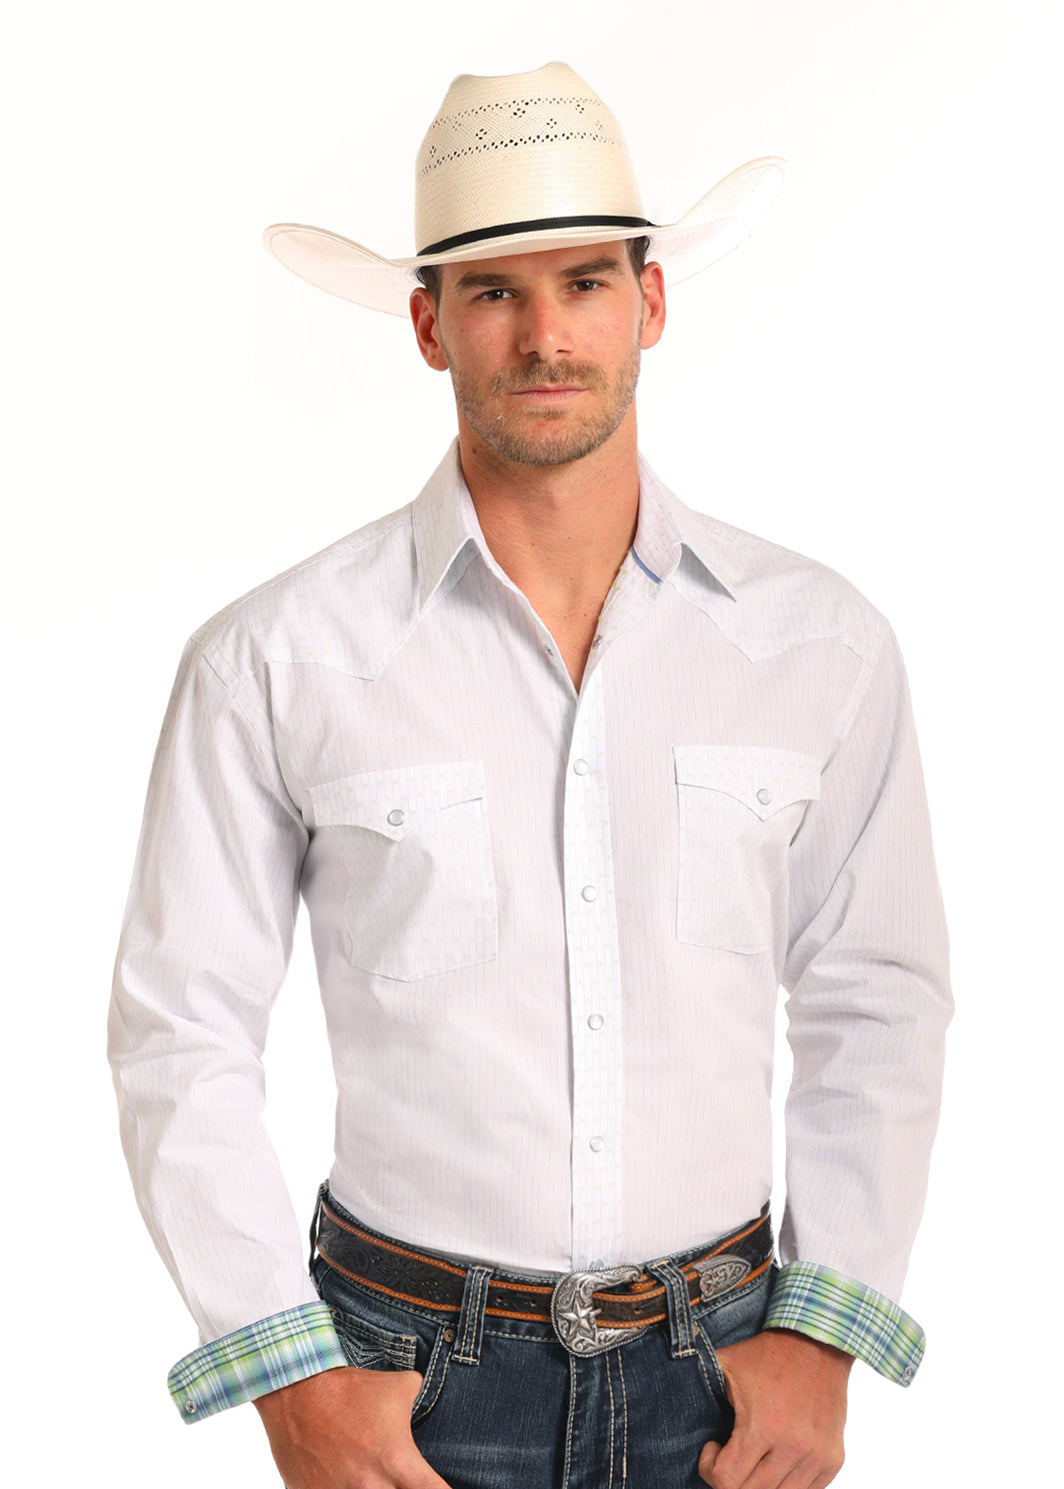 Panhandle Men's White and Key Lime Long Sleeve Pearl Snap Shirt